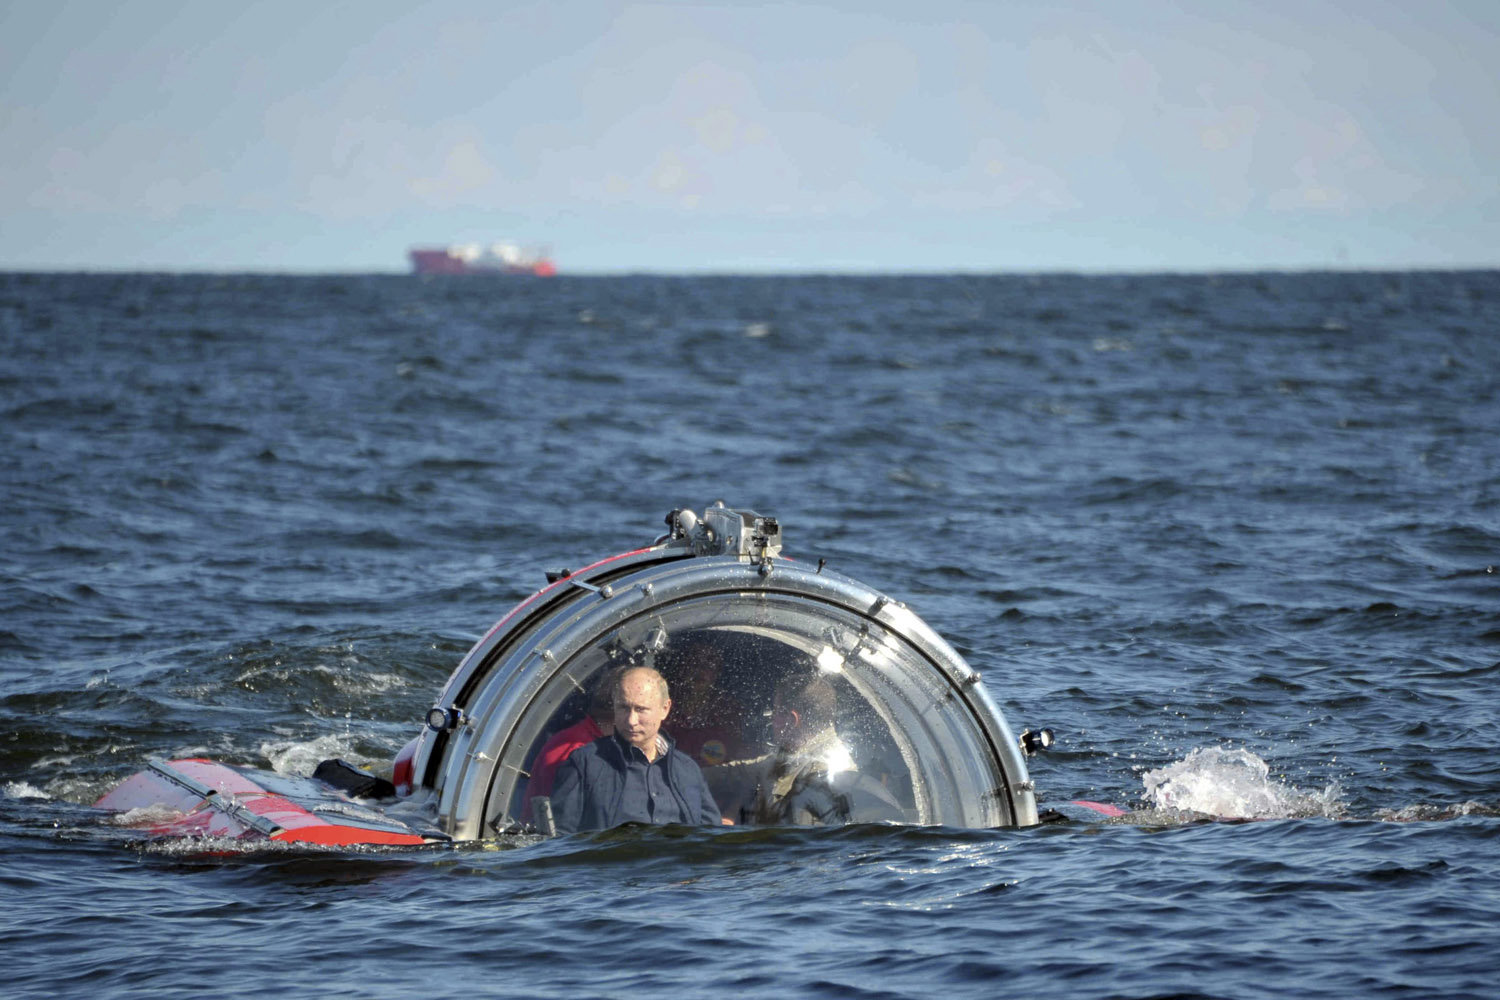 July 15, 2013. Russia's President Vladimir Putin (L) is seen through the glass of C-Explorer 5 submersible after a dive to see the remains of the naval frigate  Oleg.  which sank in the 19th century, in the Gulf of Finland in the Baltic Sea.